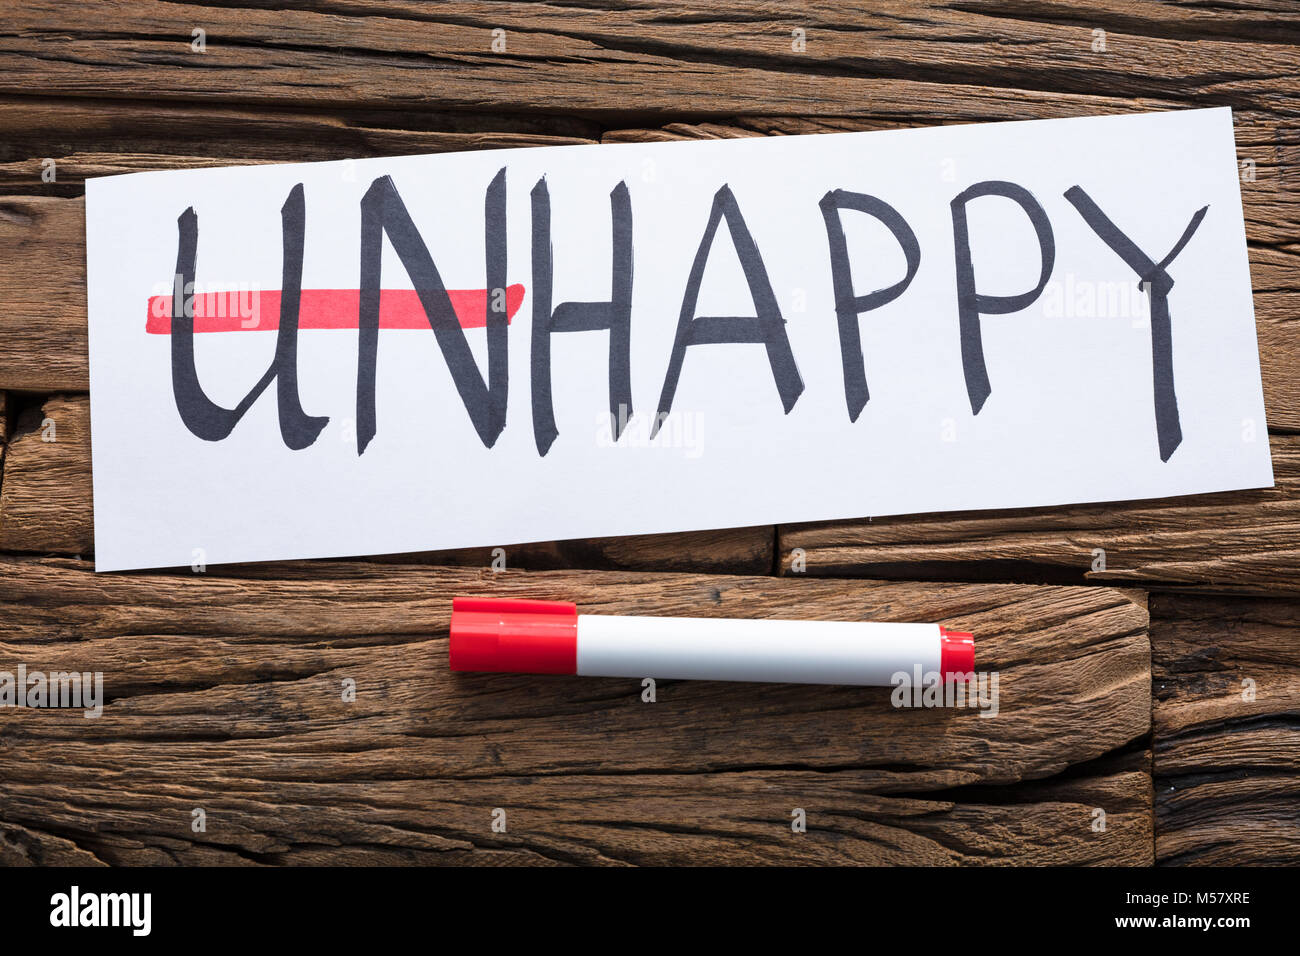 Closeup of unhappy word on paper with strike on un text by marker on wood Stock Photo